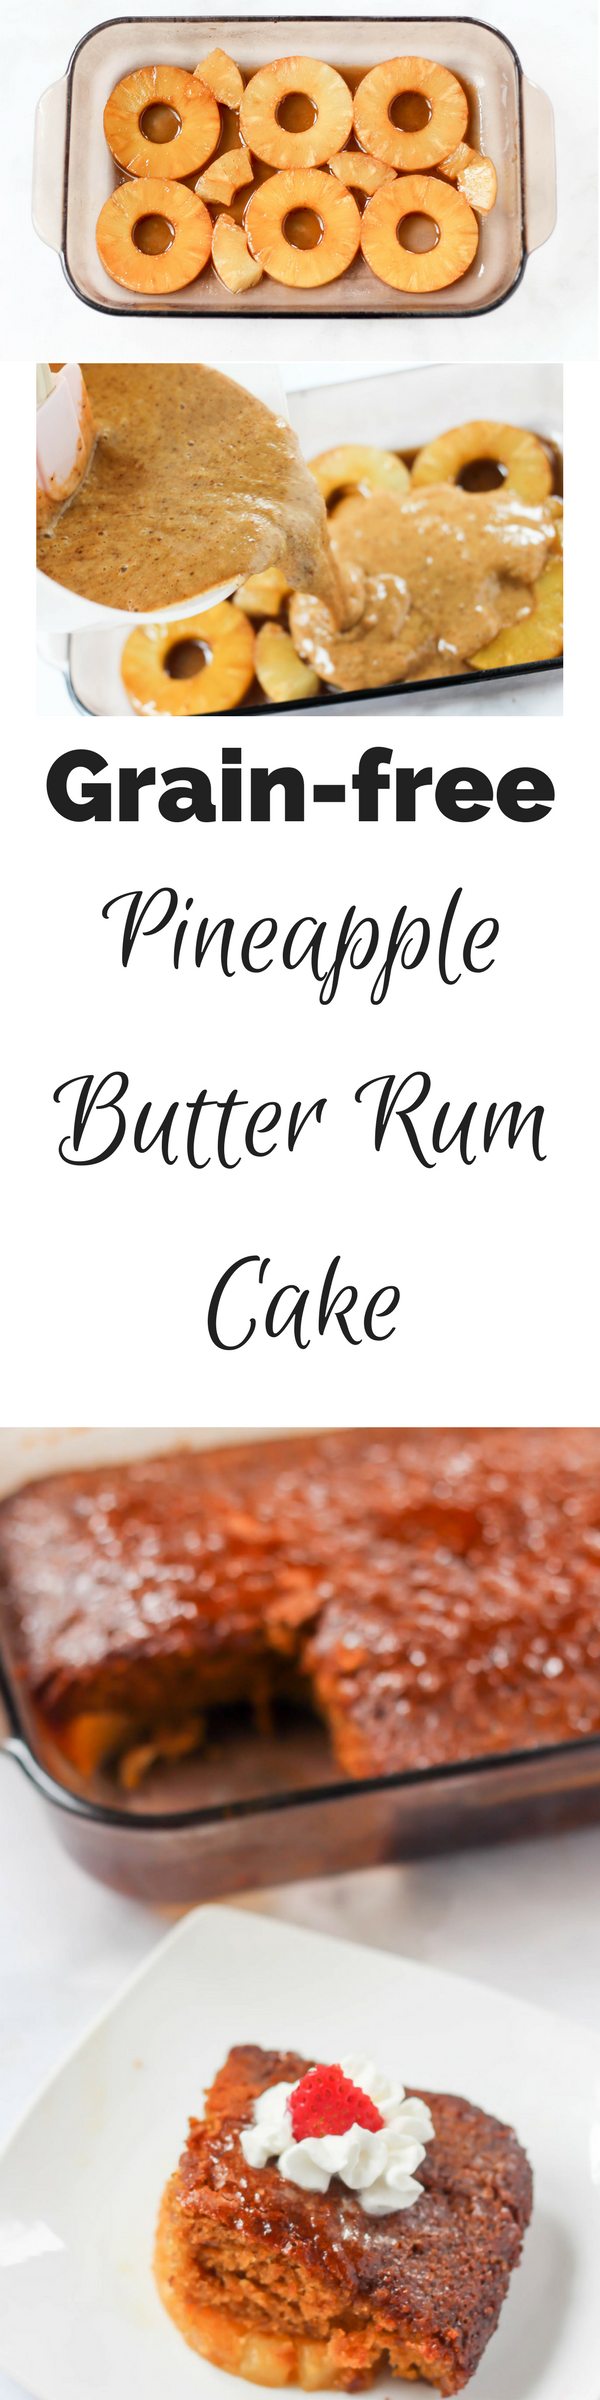 Grain free pineapple butter rum cake made with no refined sugar. This is the spring dessert you've been looking for! | fitnessista.com | #pineapplecake #grainfreedessert #easterdessert #springdessert #pineapplebutterrumcake